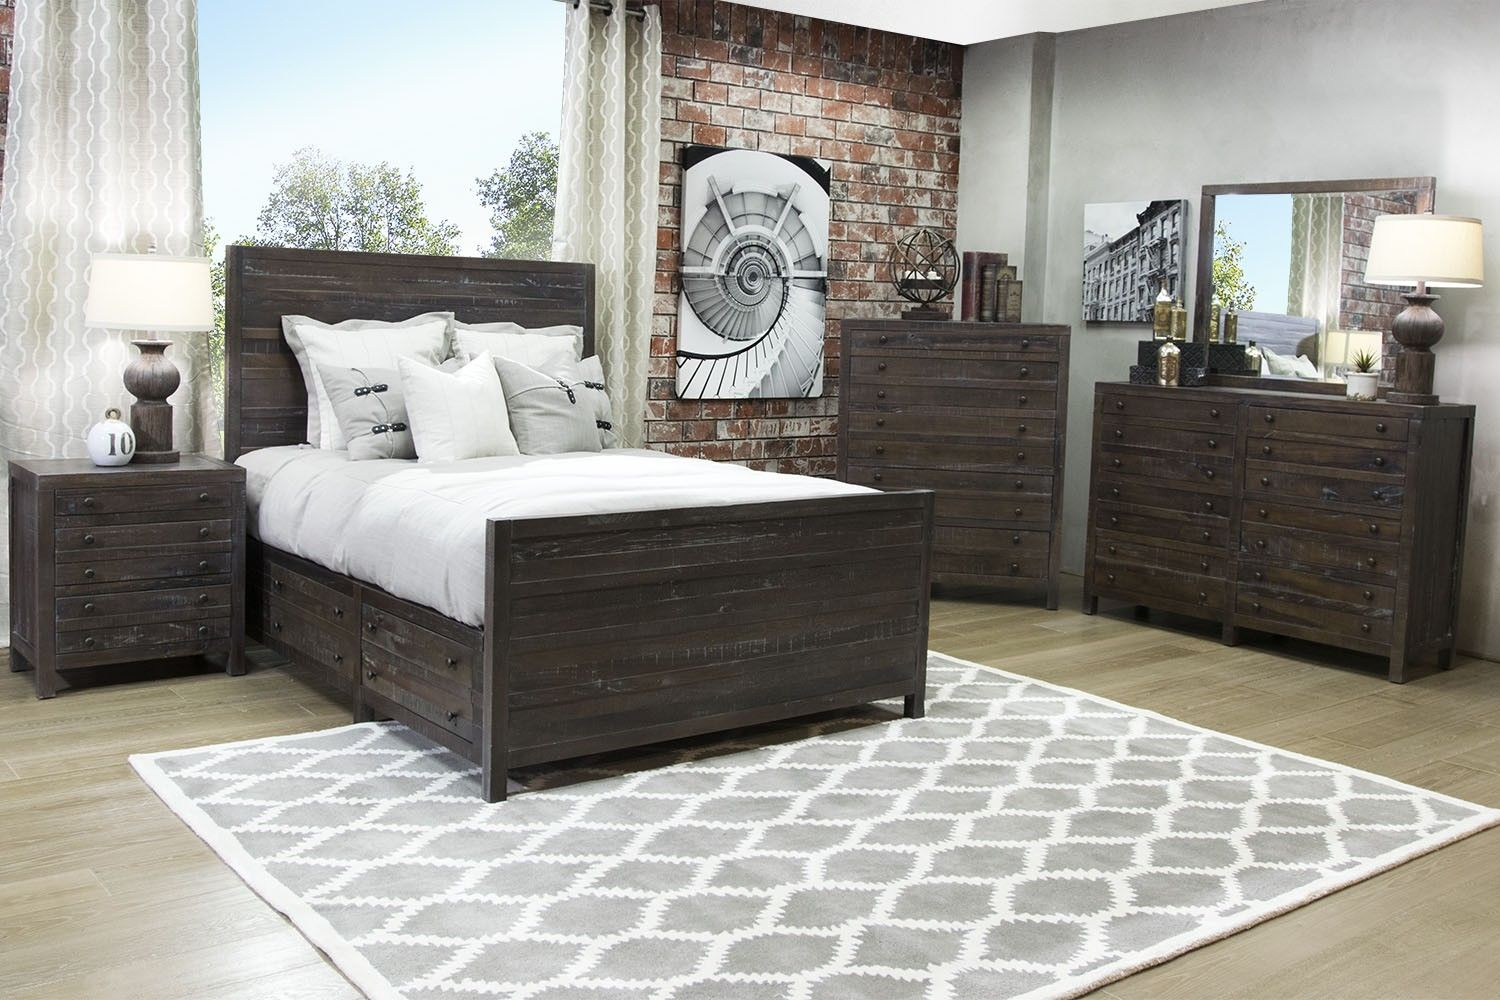 Mor Furniture For Less The Townsend Bedroom Mor Furniture For - Mor furniture bedroom sets